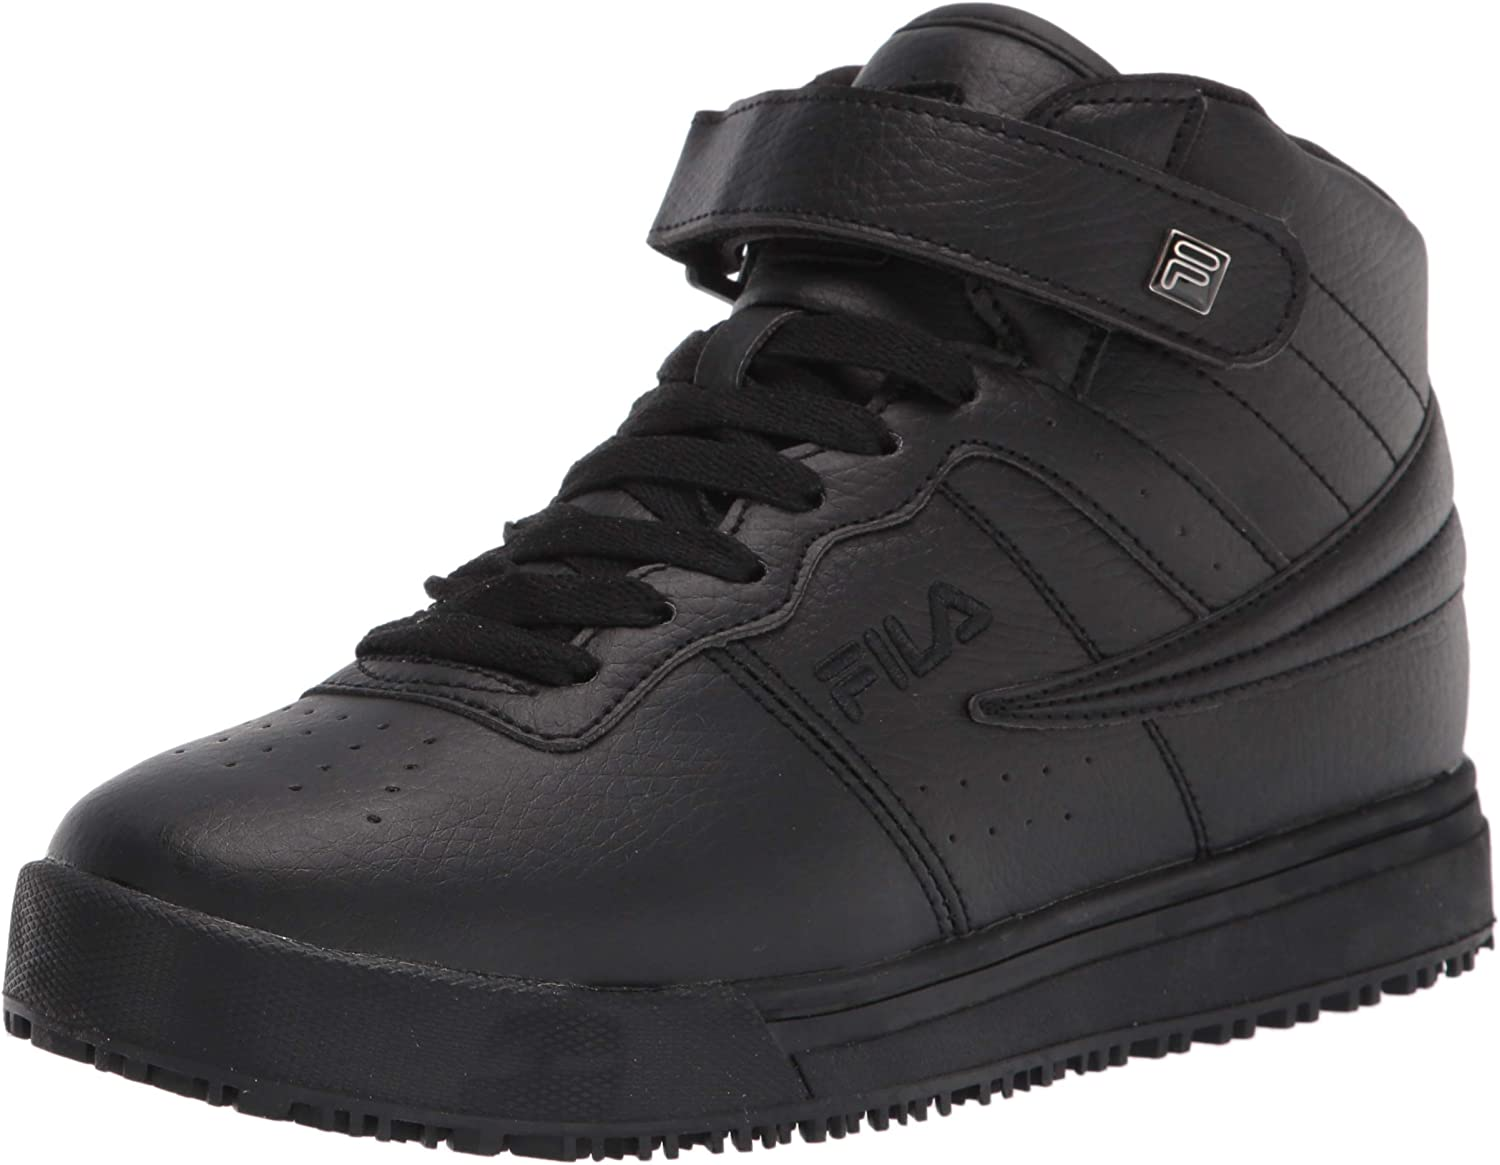 Fila Women's Vulc 13 Sr Shoes